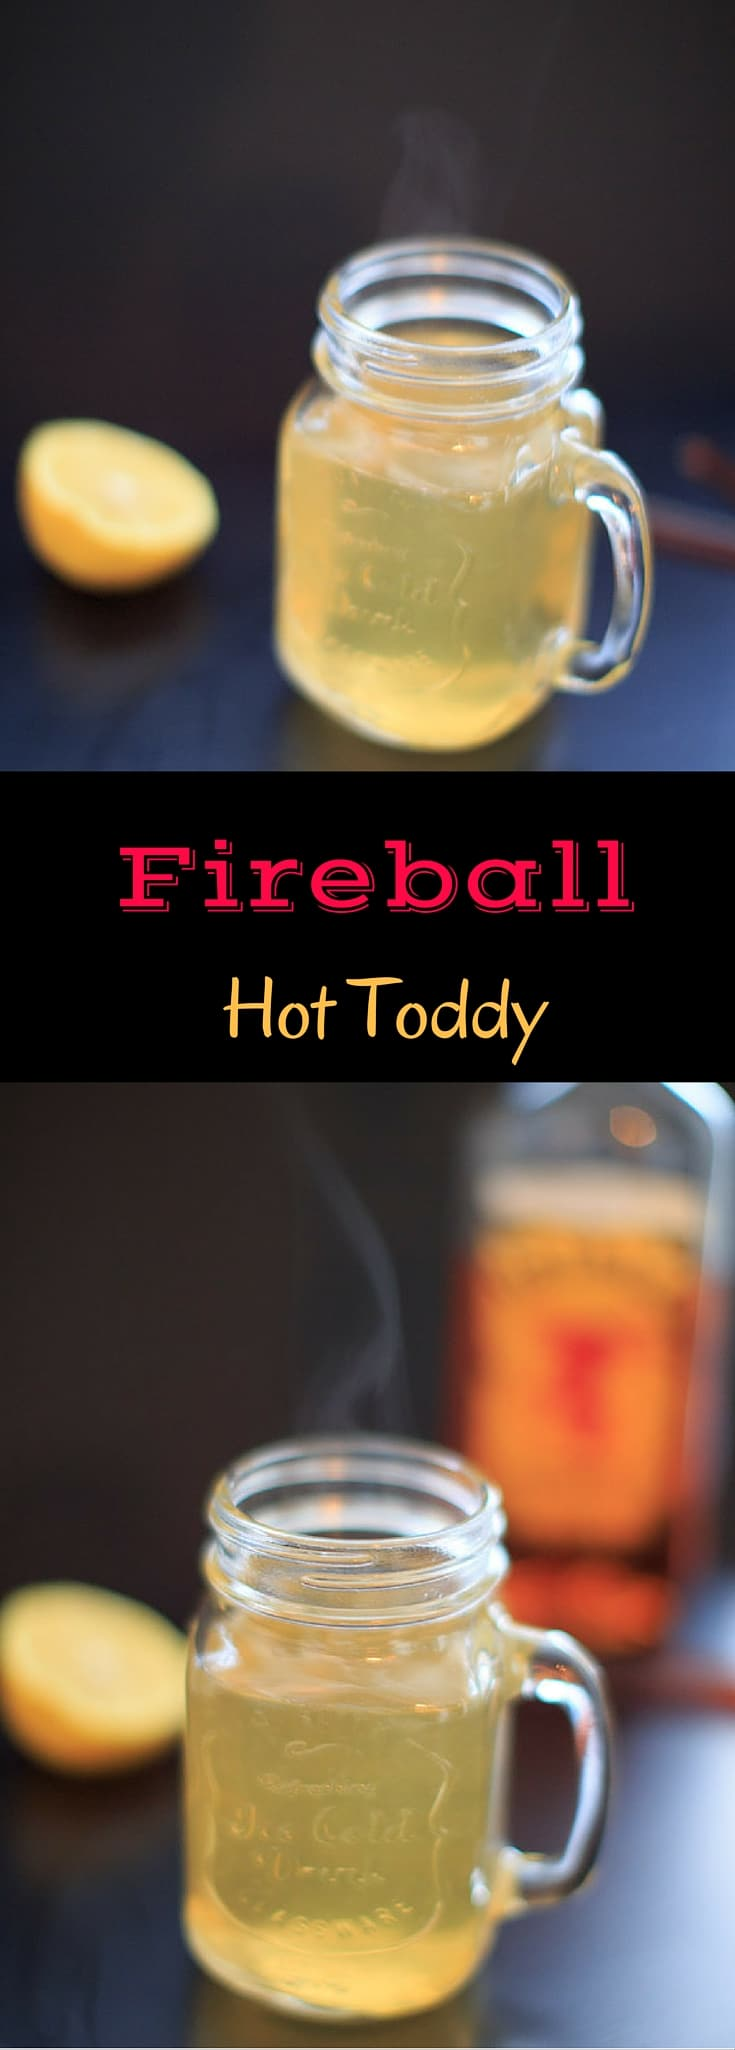 Fireball Hot Toddy Cocktail Recipe - cinnamon whiskey, honey and lemon drink to help ease a sore throat and melt your sickness away.